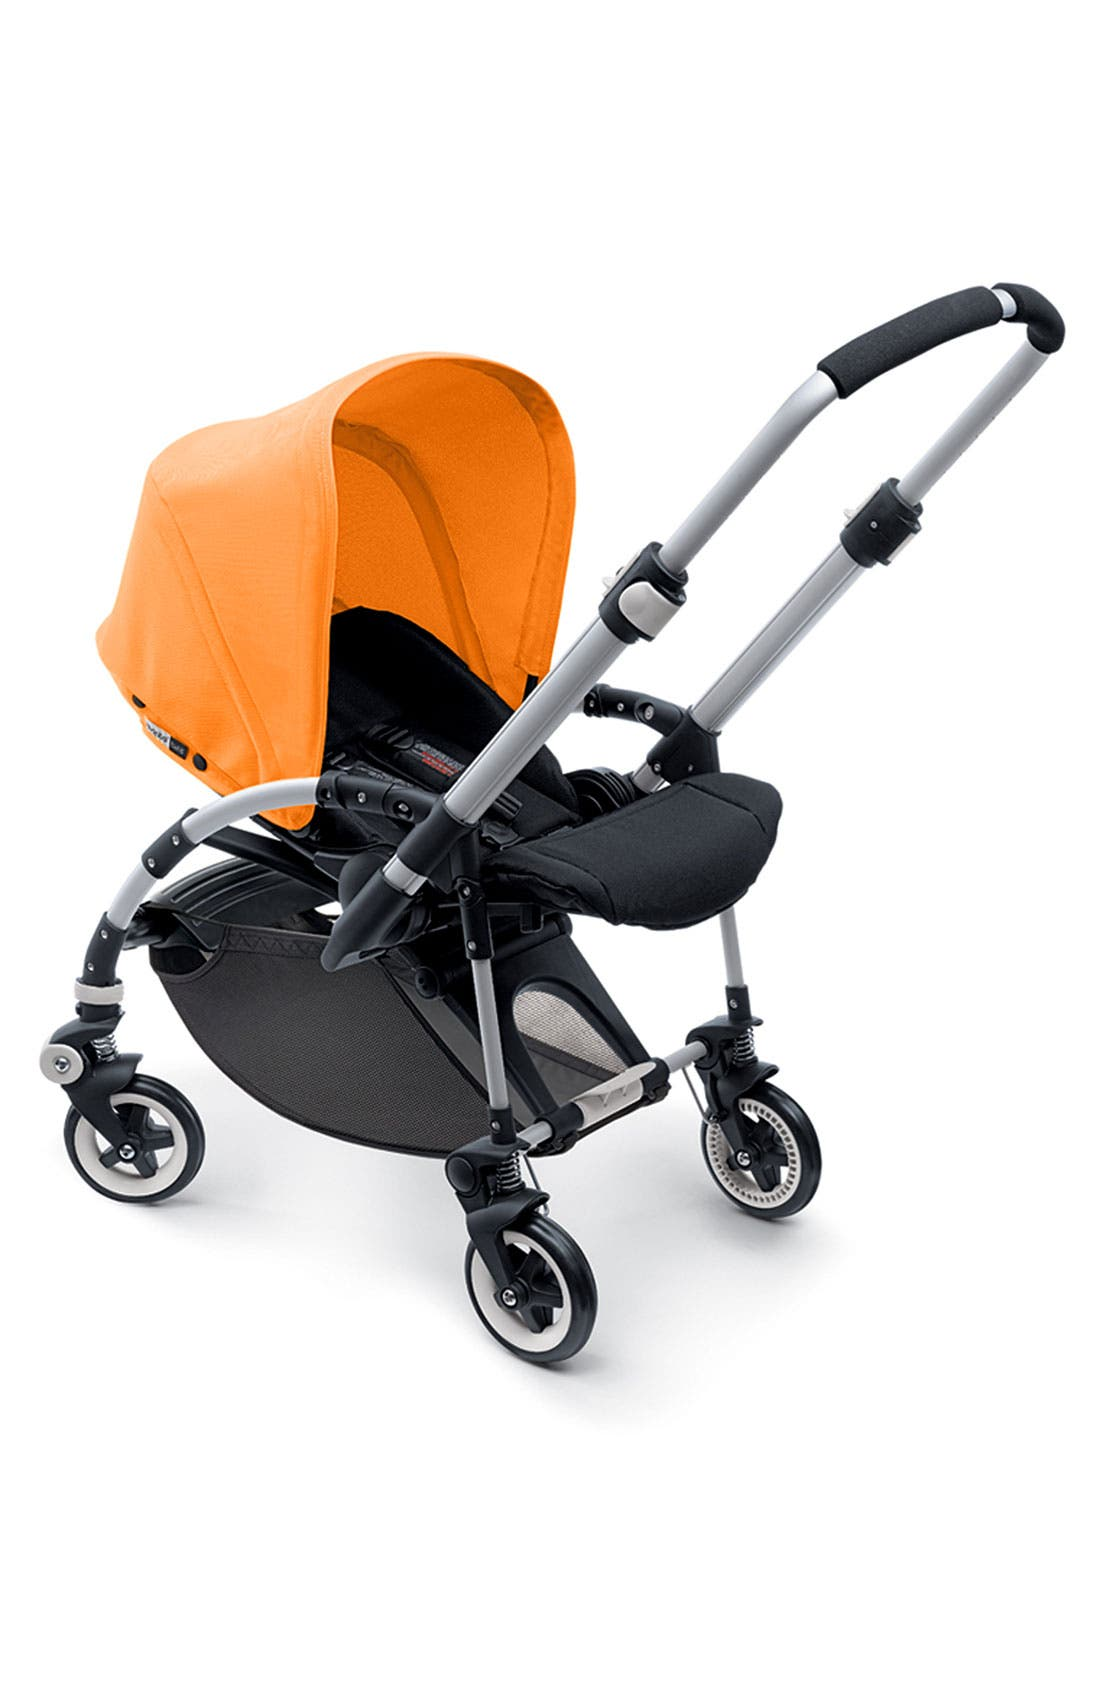 Alternate Image 1 Selected - Bugaboo 'Bee' Stroller Sun Canopy (Special Edition)